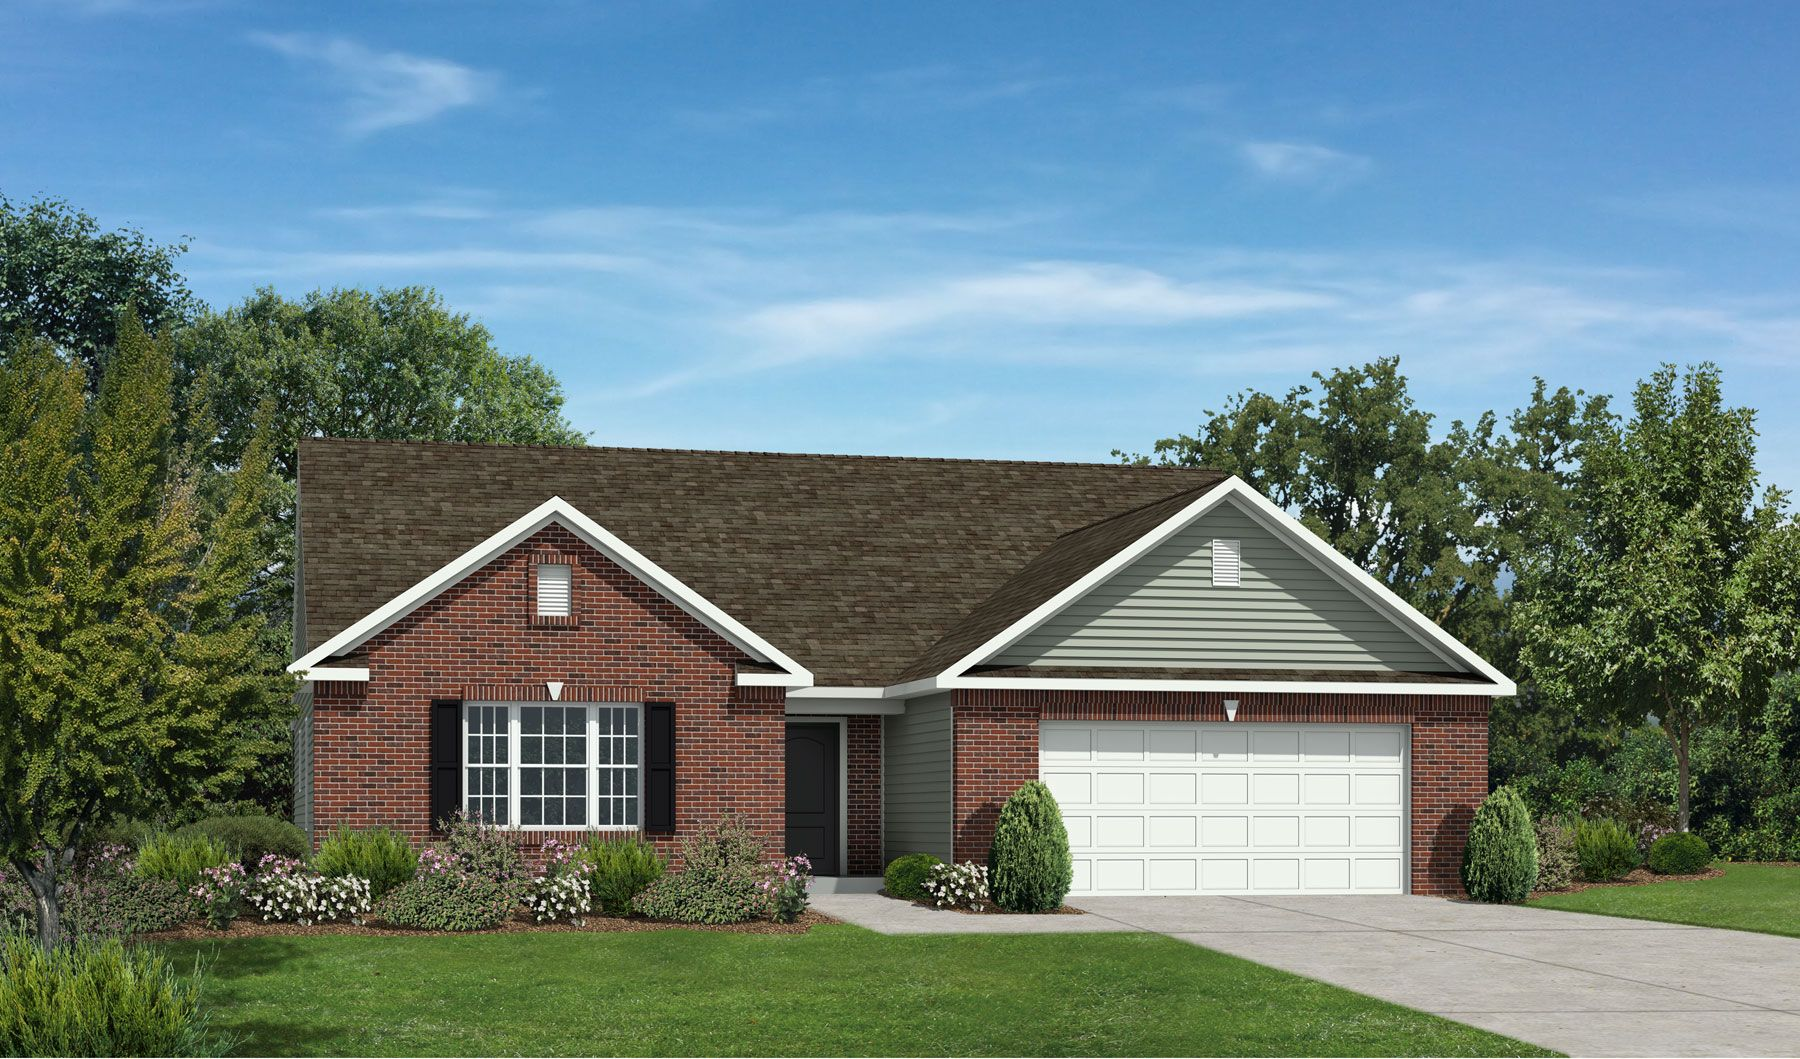 Fairmont - Winding Ridge-Fairways East: Indianapolis, IN - Westport Homes of Indianapolis